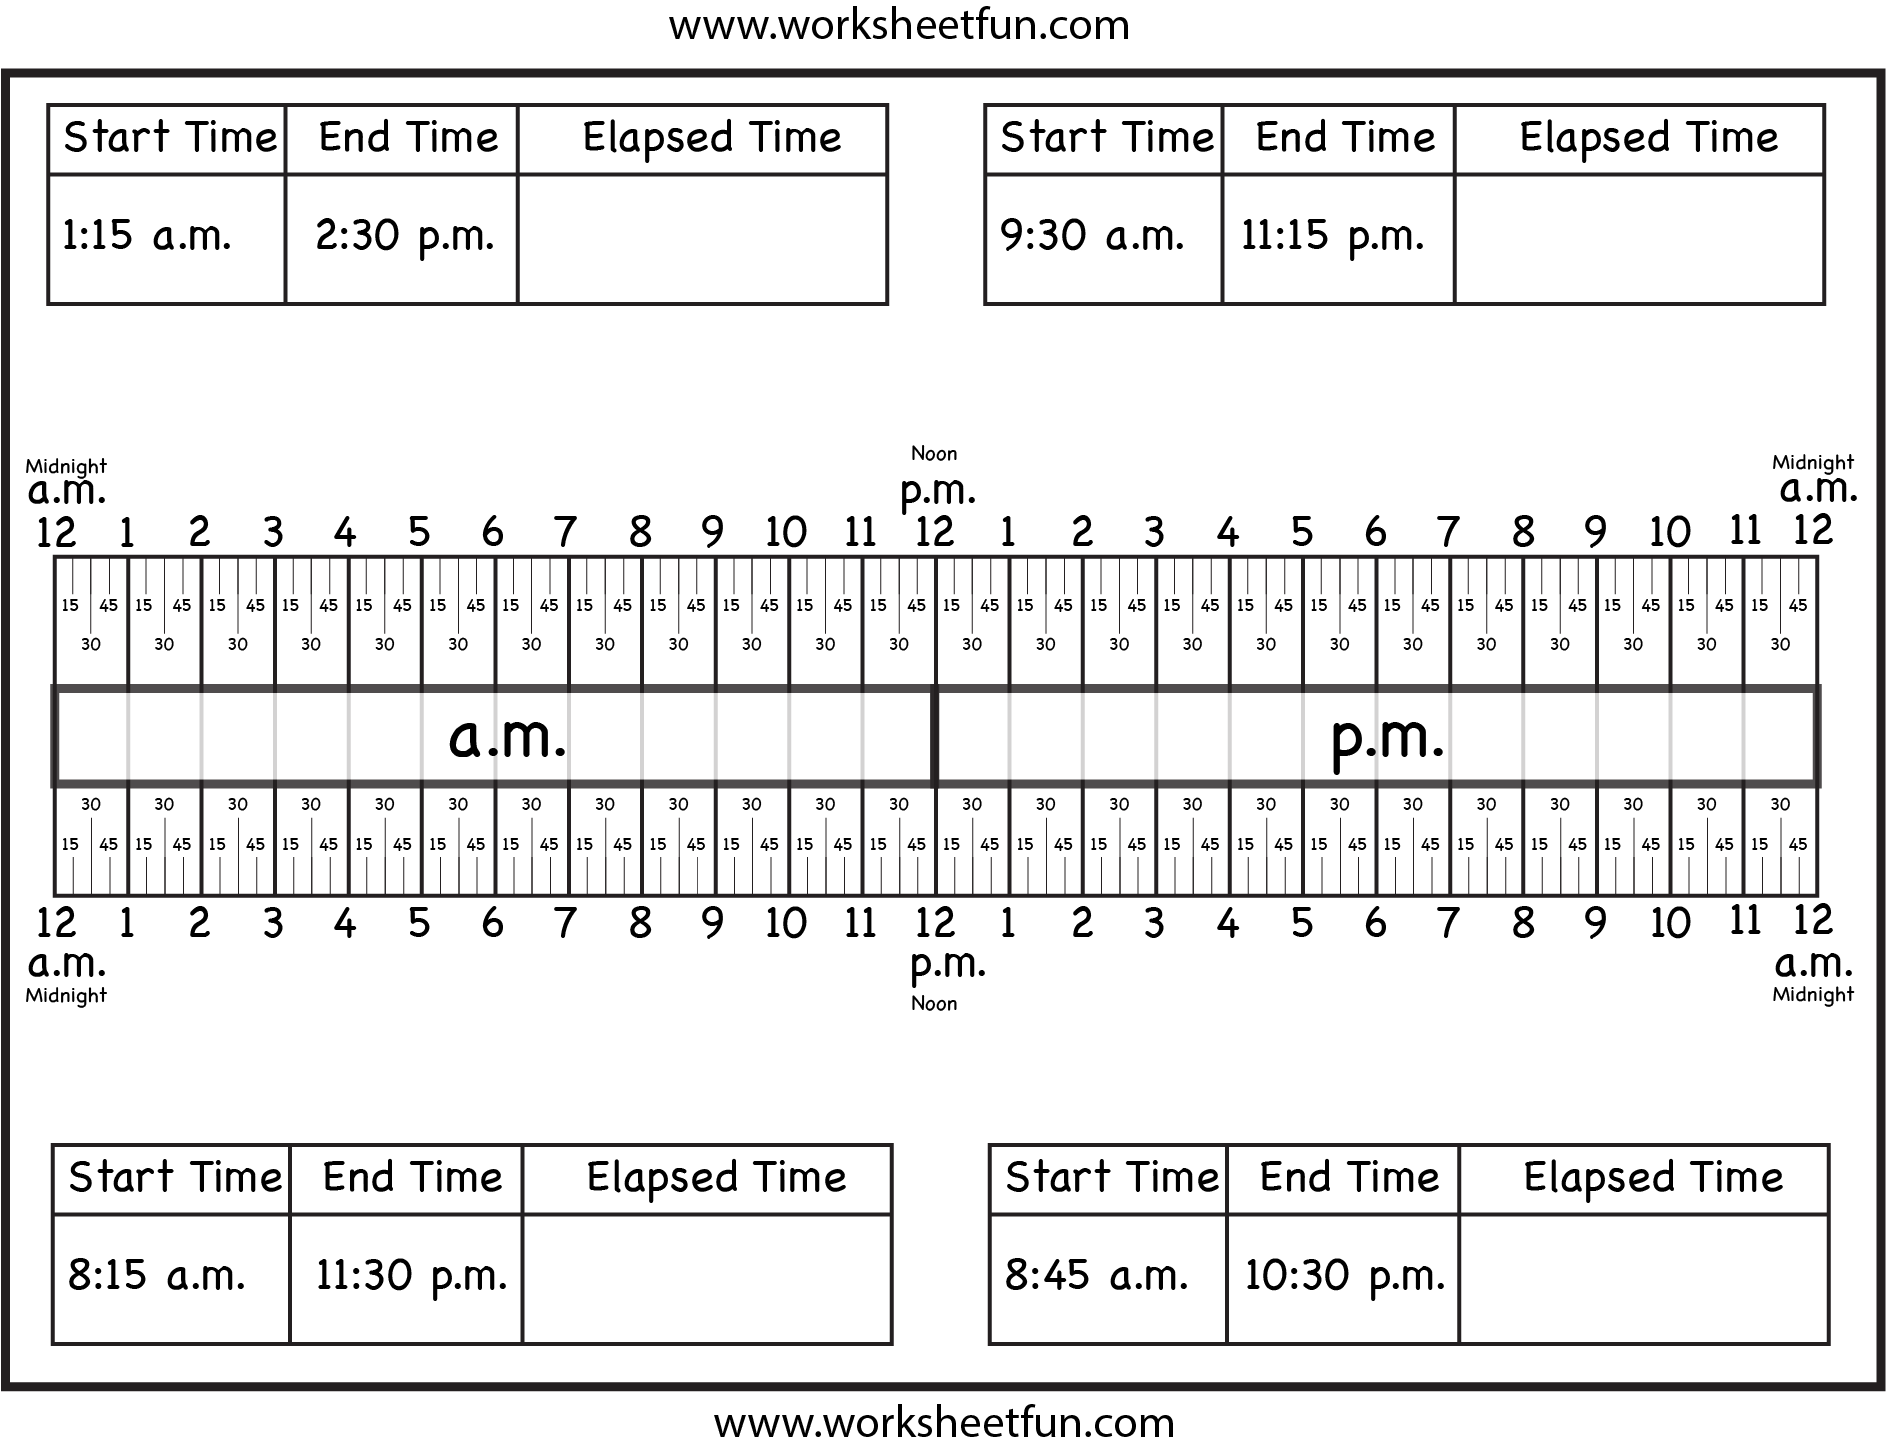 Calculate elapsed time using elapsed time ruler – quarter hours 15